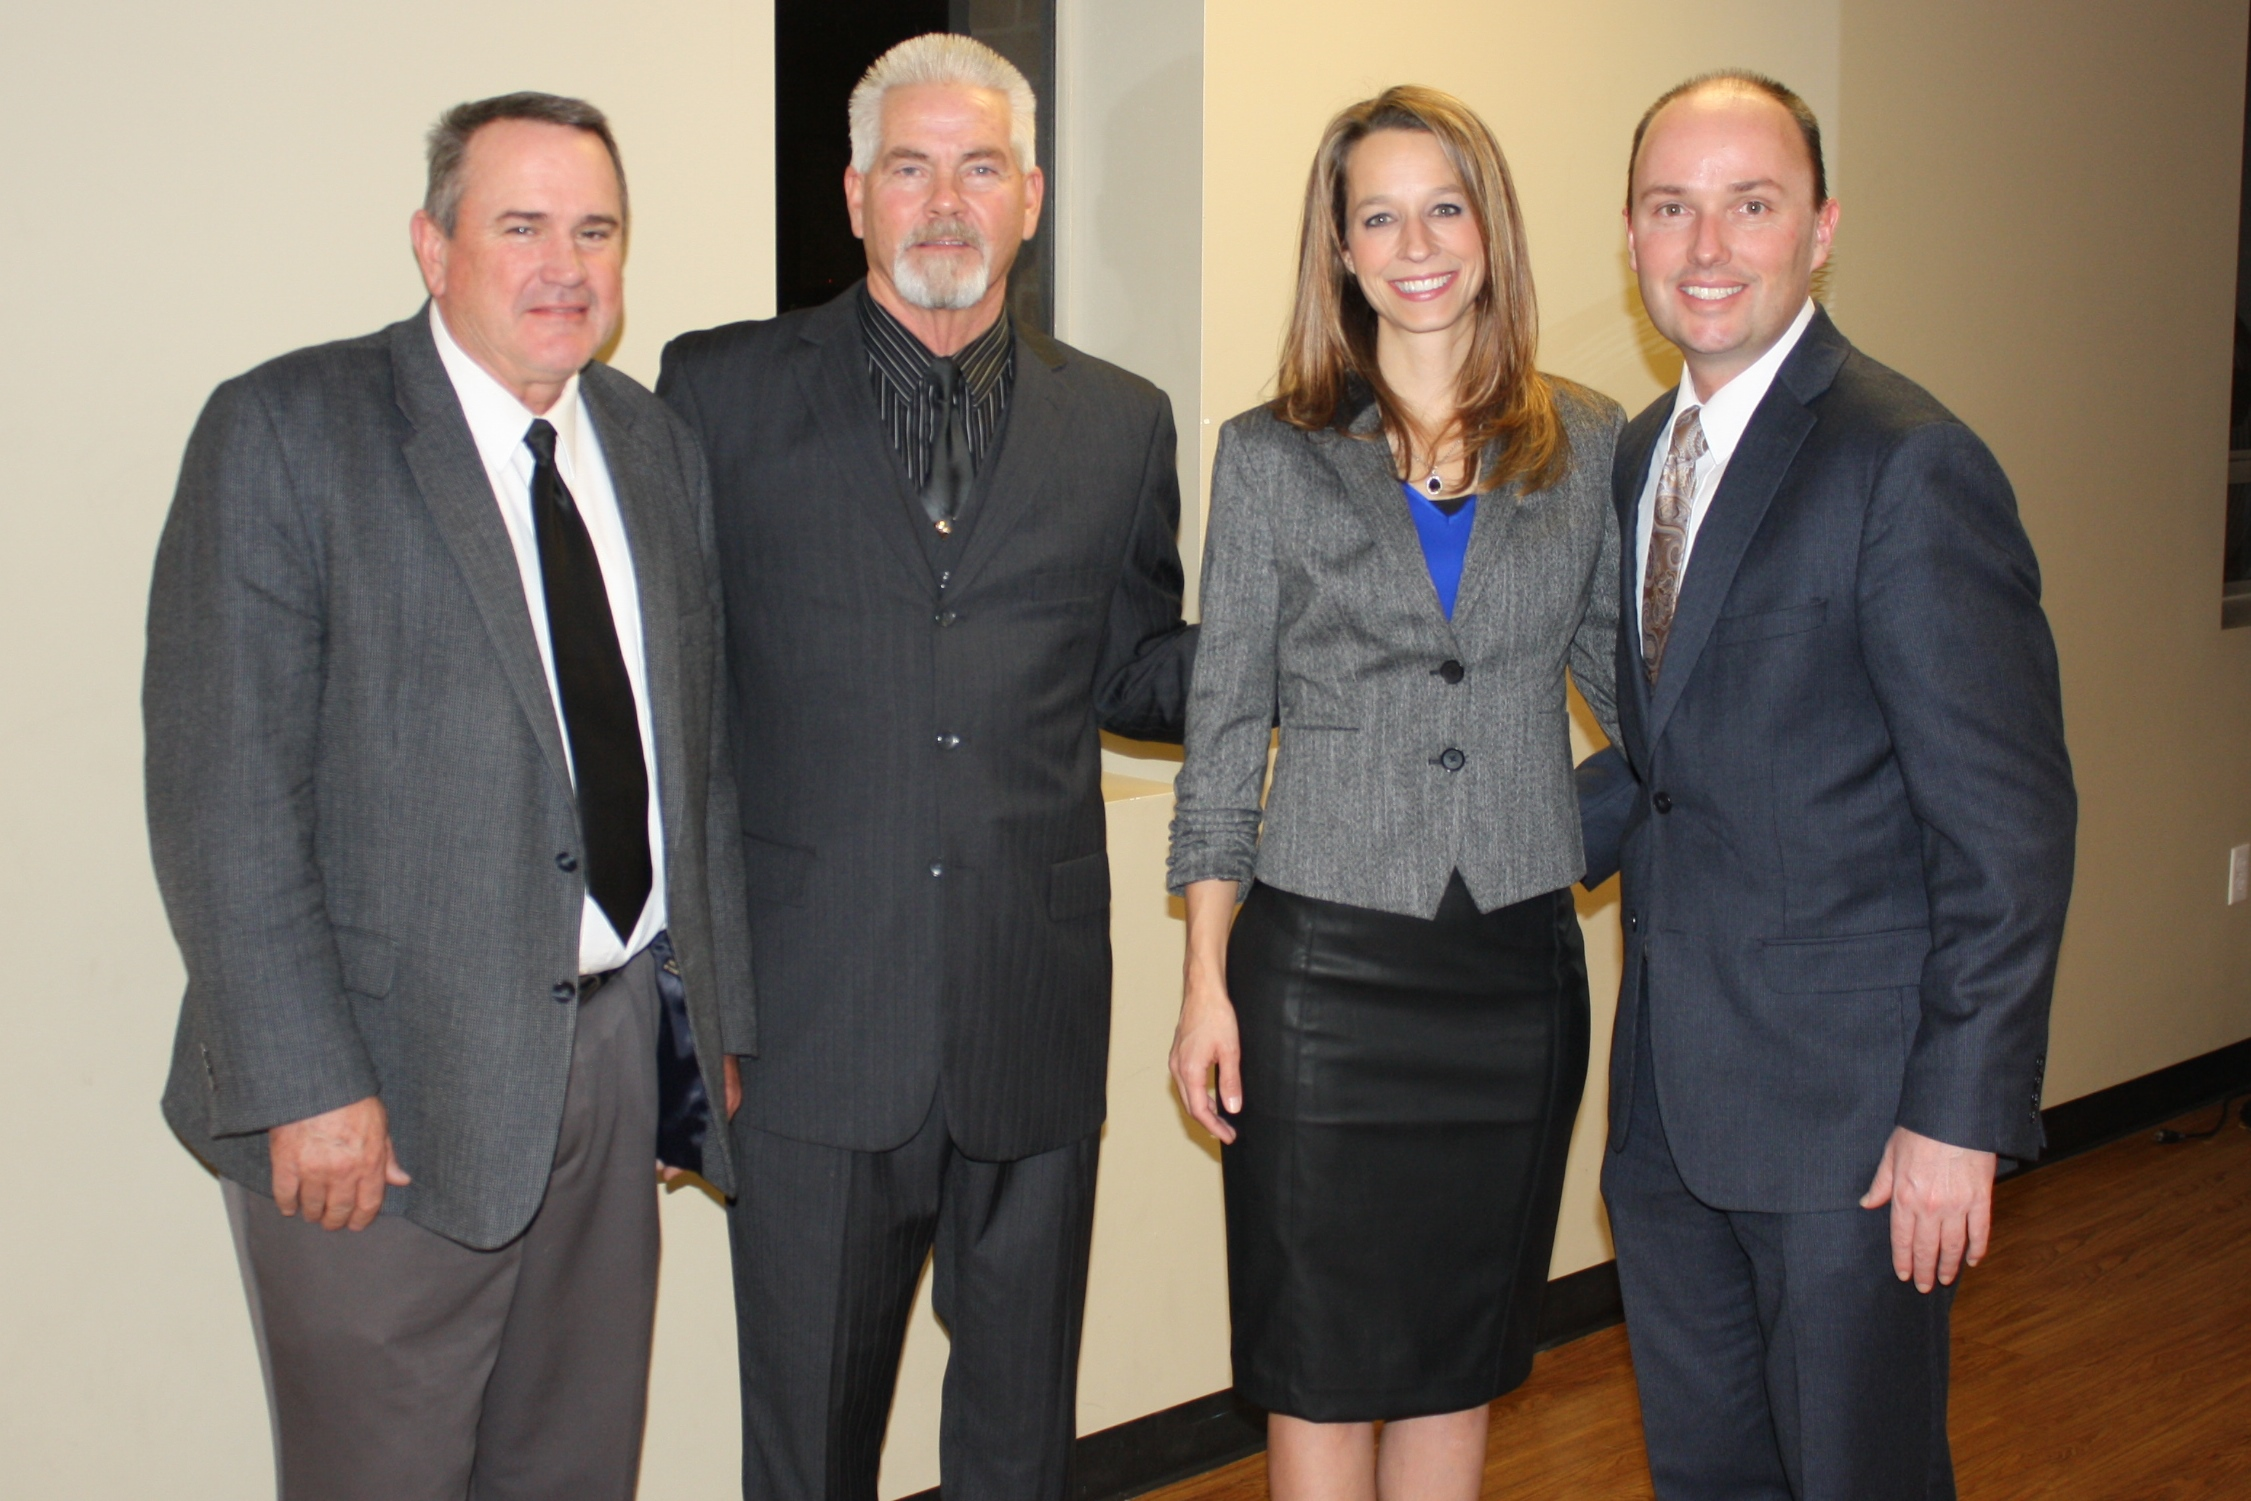 Lt. Gov. Spencer Cox and his wife, Abby (R), pose with Hurricane Mayor John Bramall and 2014 Hurricane Valley Chamber President Greg Aldred (L-R on the left) before the Chamber's awards ceremony, Hurricane, Utah, Jan. 15, 2015| Photo by Reuben Wadsworth, St. George News